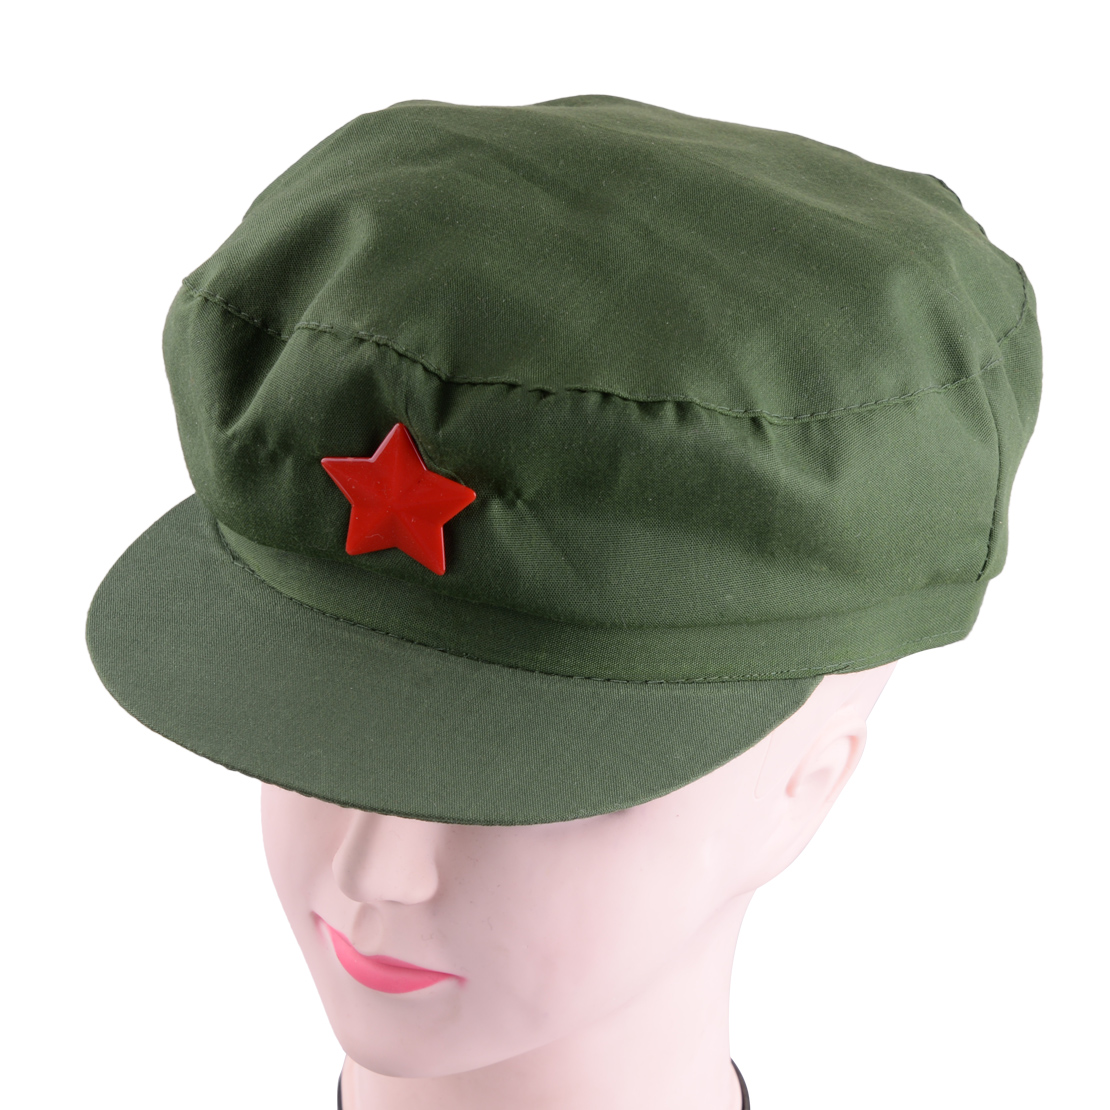 Details about China Chairmen Mao PLA Red Army Soldier Green Star Cap  Communist Party Hat 019d4a37087d